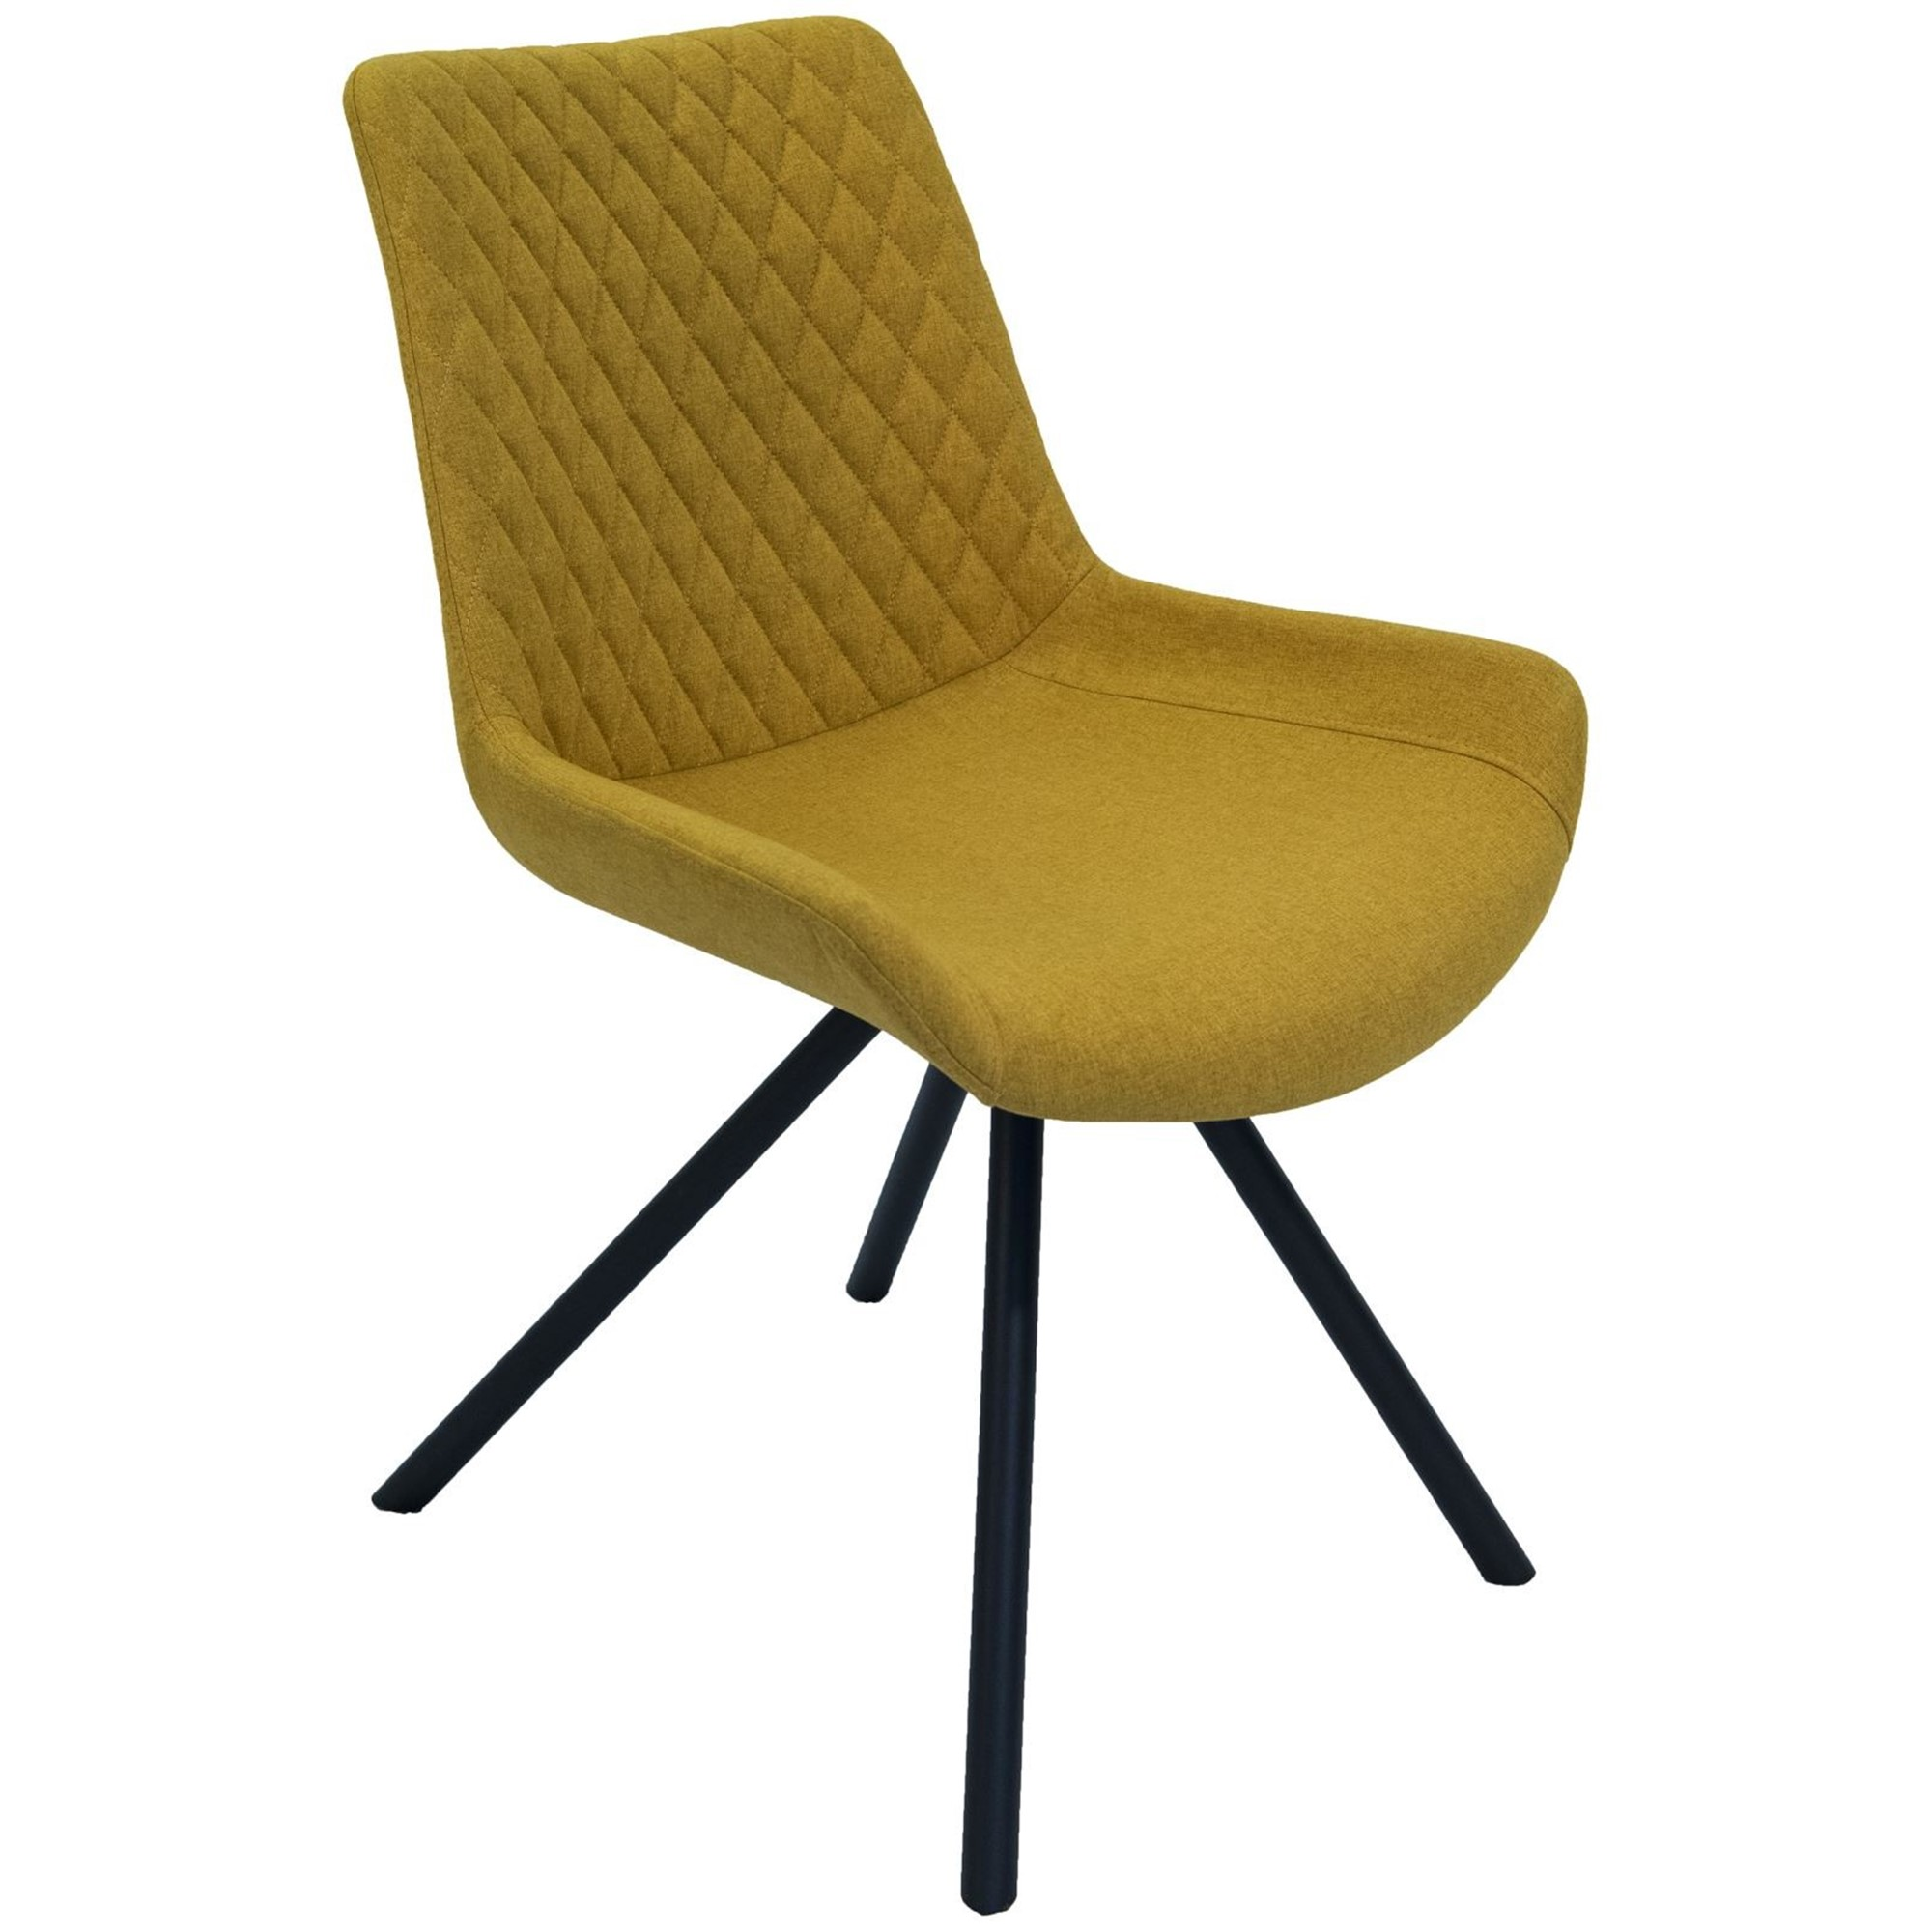 Astounding Dining Chairs Sigma Dining Chair Saffron Ibusinesslaw Wood Chair Design Ideas Ibusinesslaworg